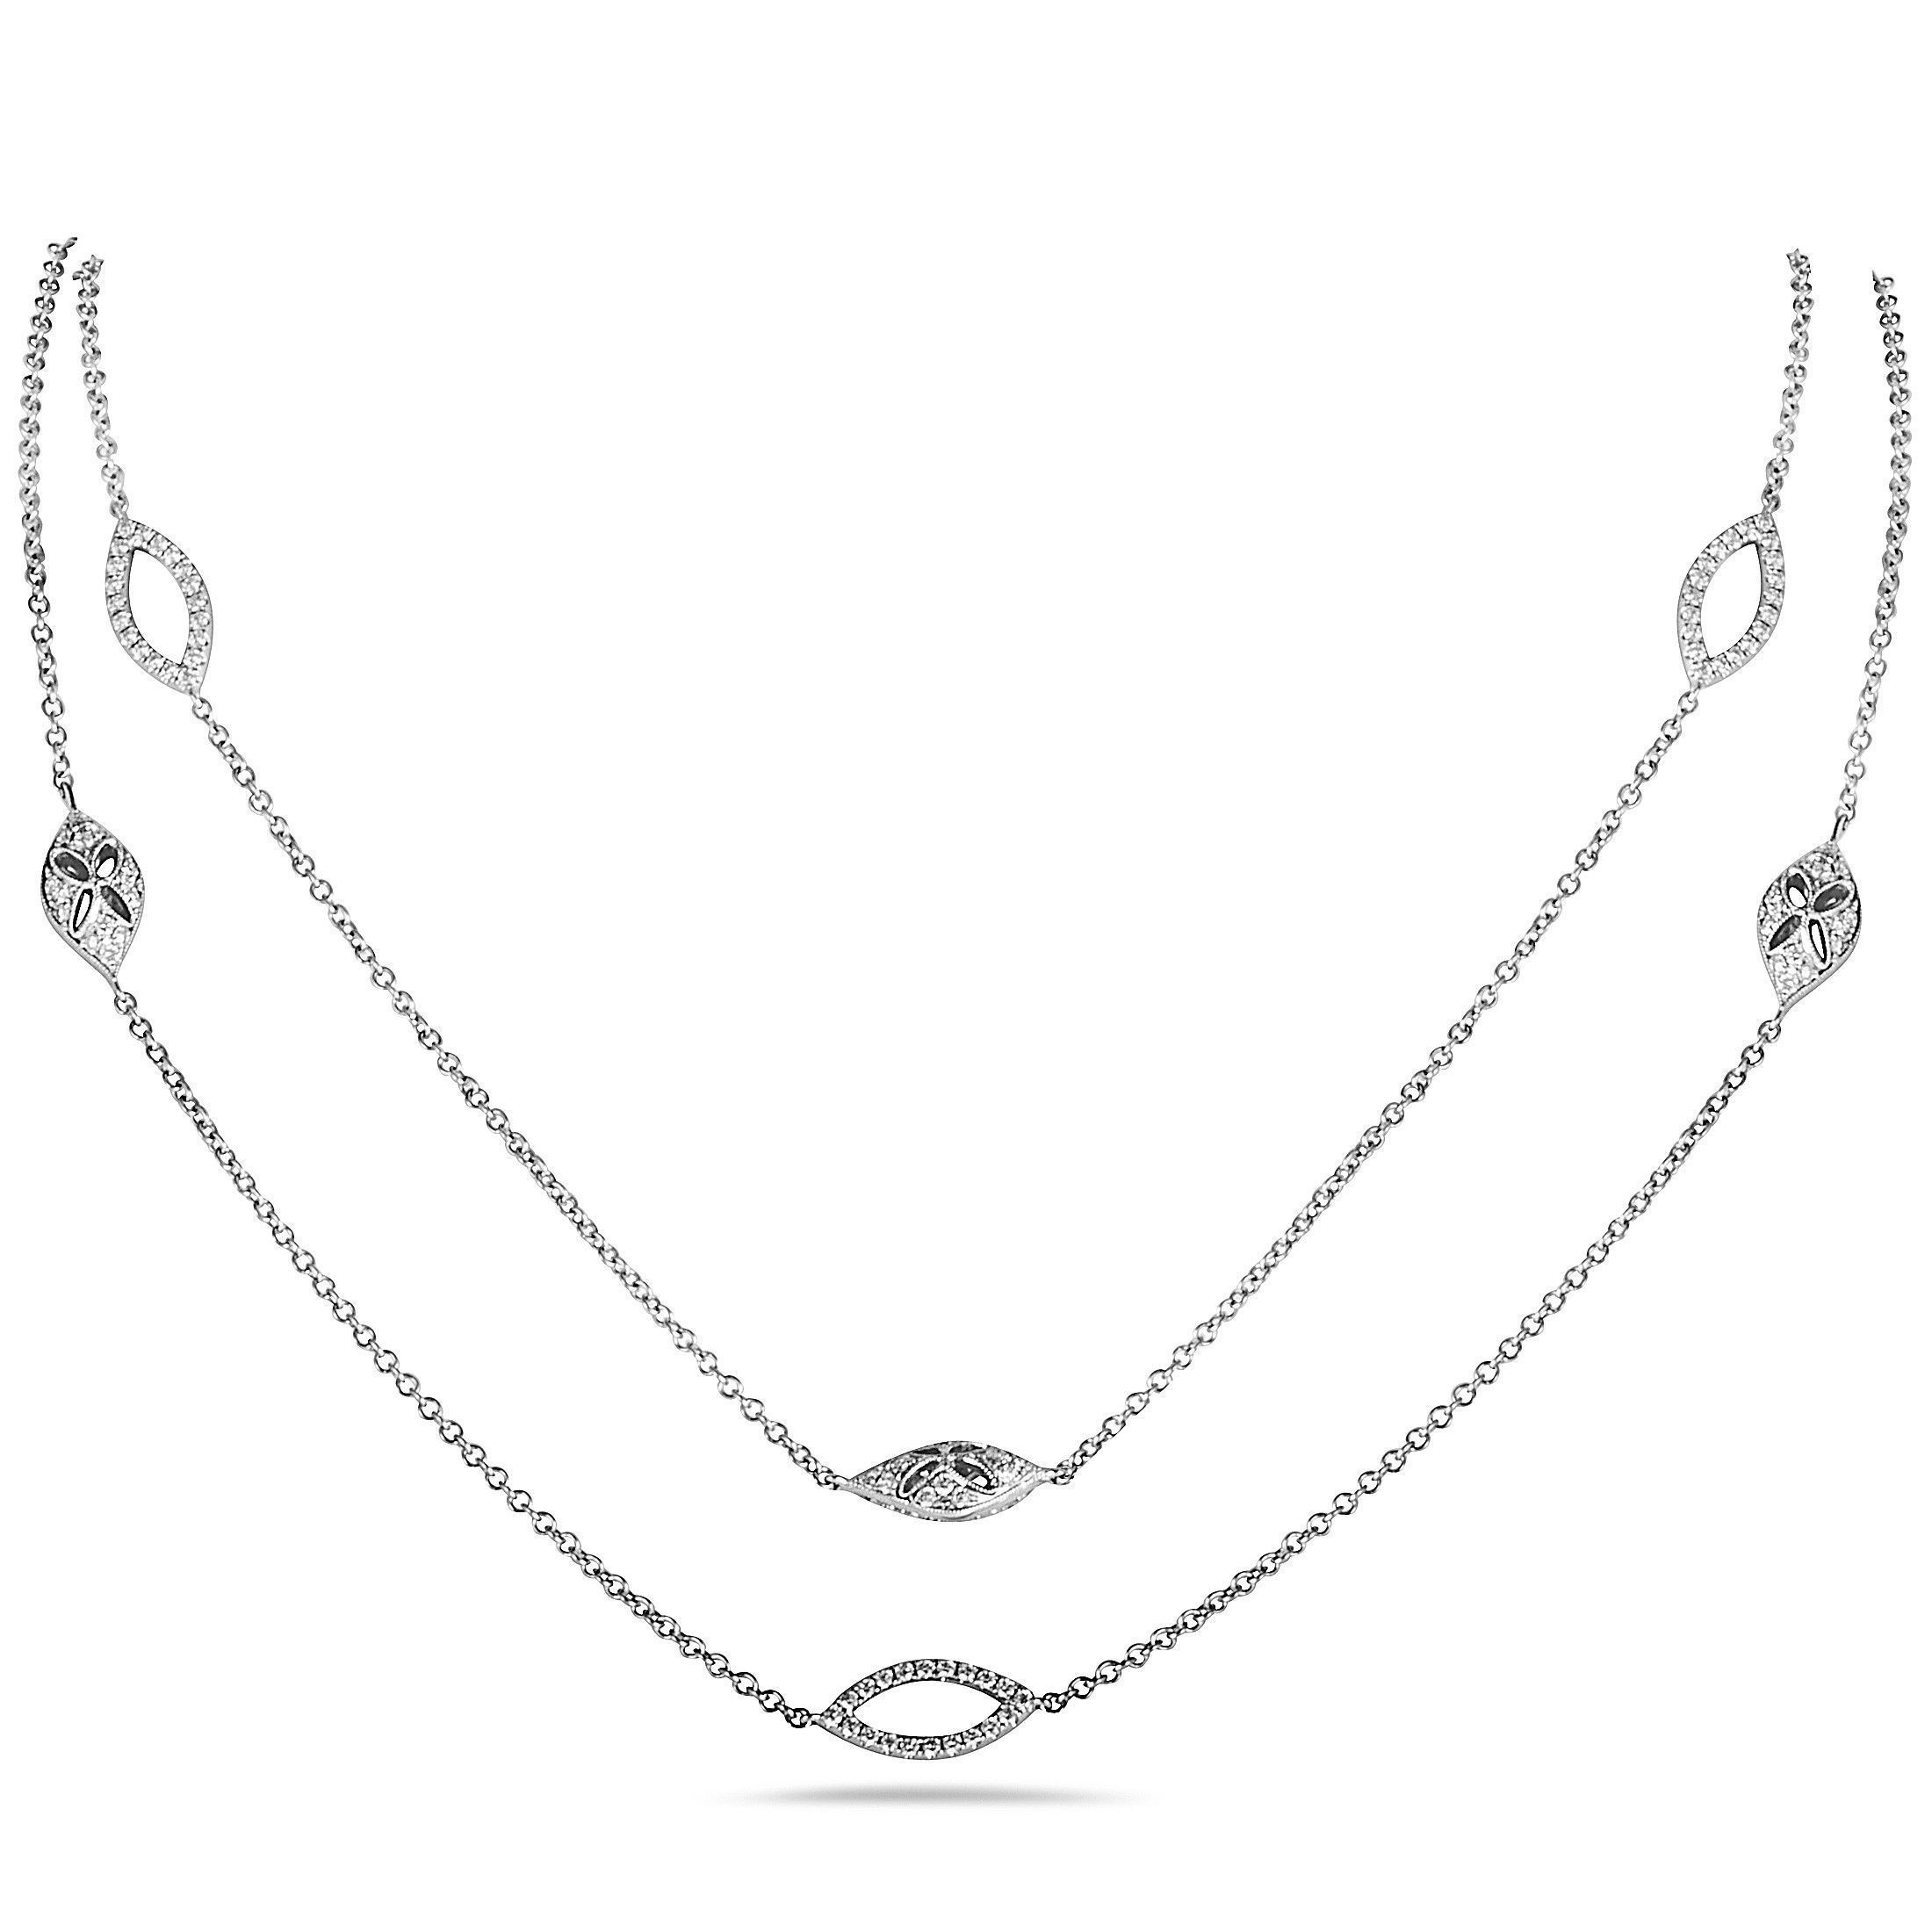 Lb Exclusive 18k White Gold Marquise Diamond Long Sautoir Necklace In Most Current White Gold Diamond Sautoir Necklaces (View 10 of 25)